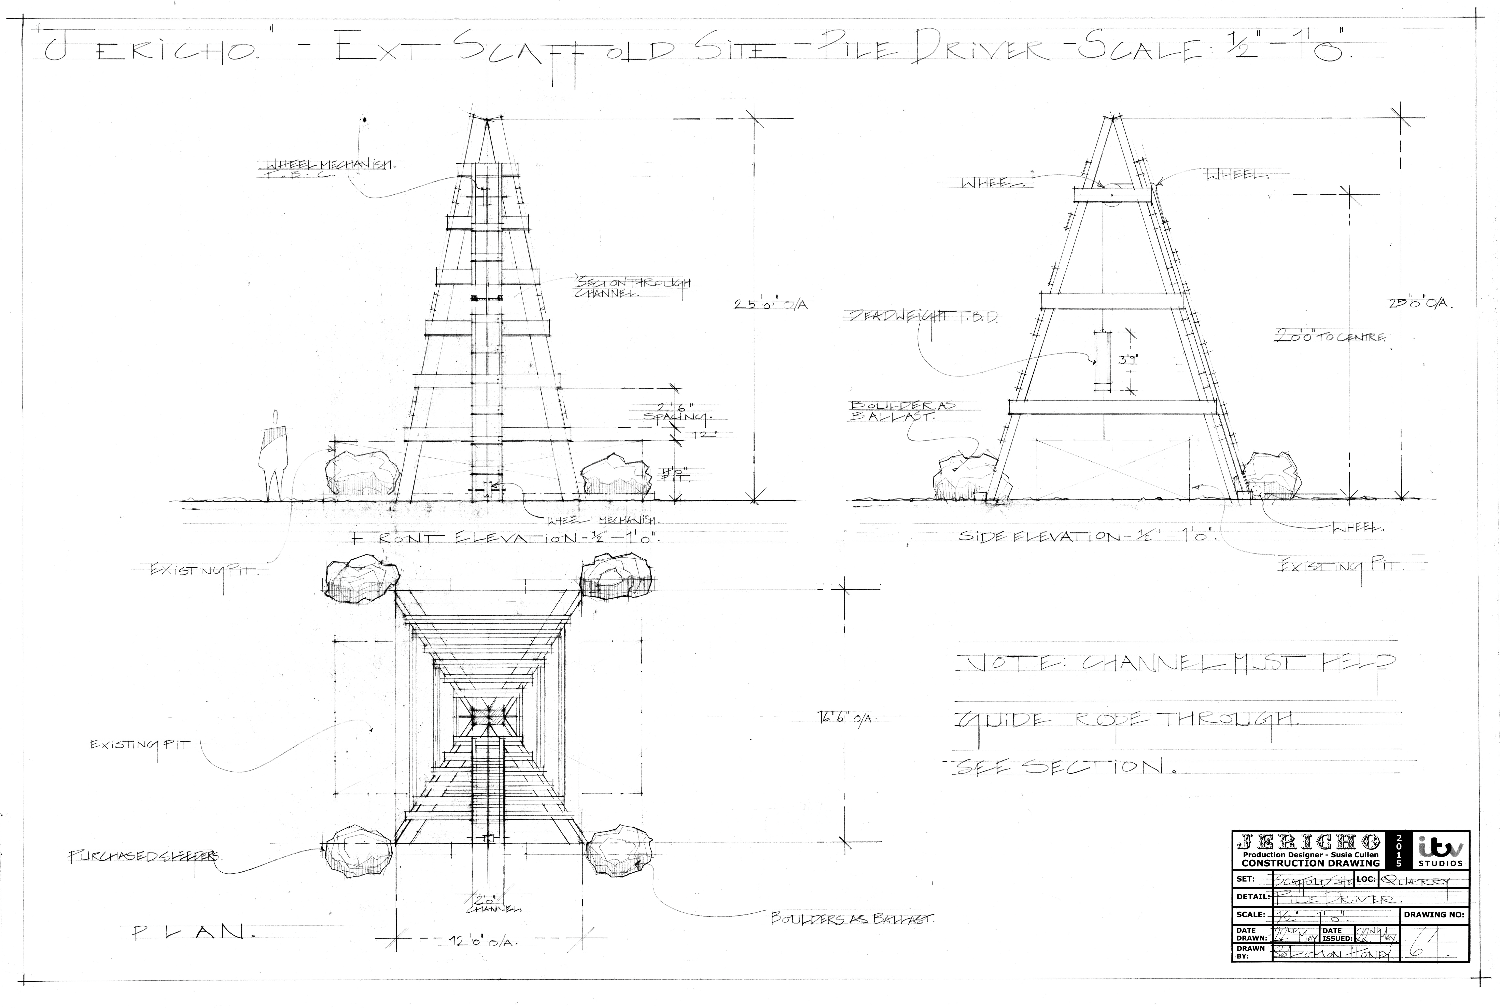 Drawing 64 - Ext Scaffold Site - Pile Driver Plan and Elevations_edited